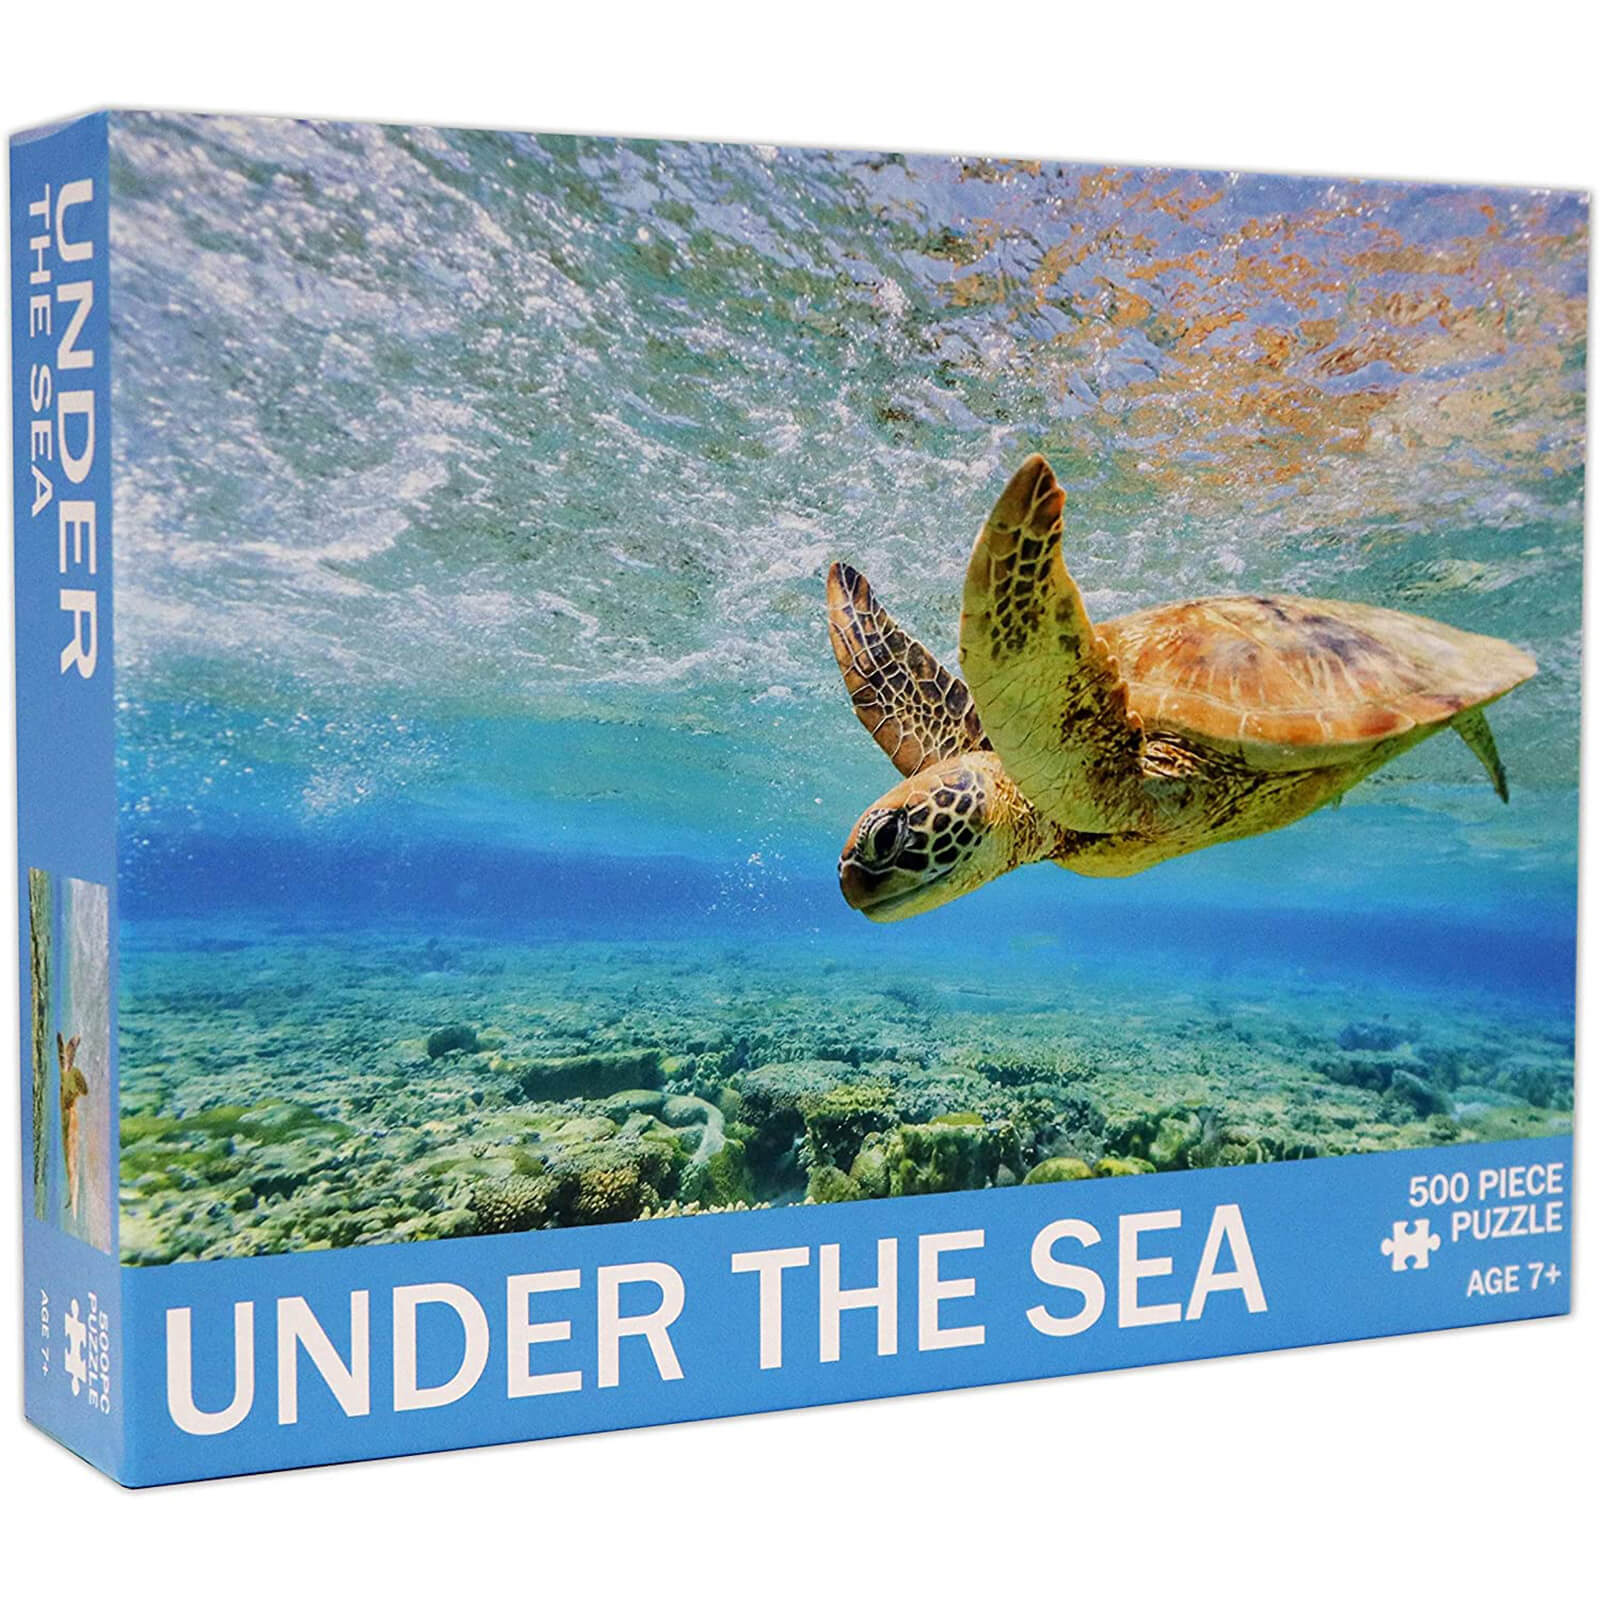 Image of Under the Sea Jigsaw Puzzle (500 Pieces)